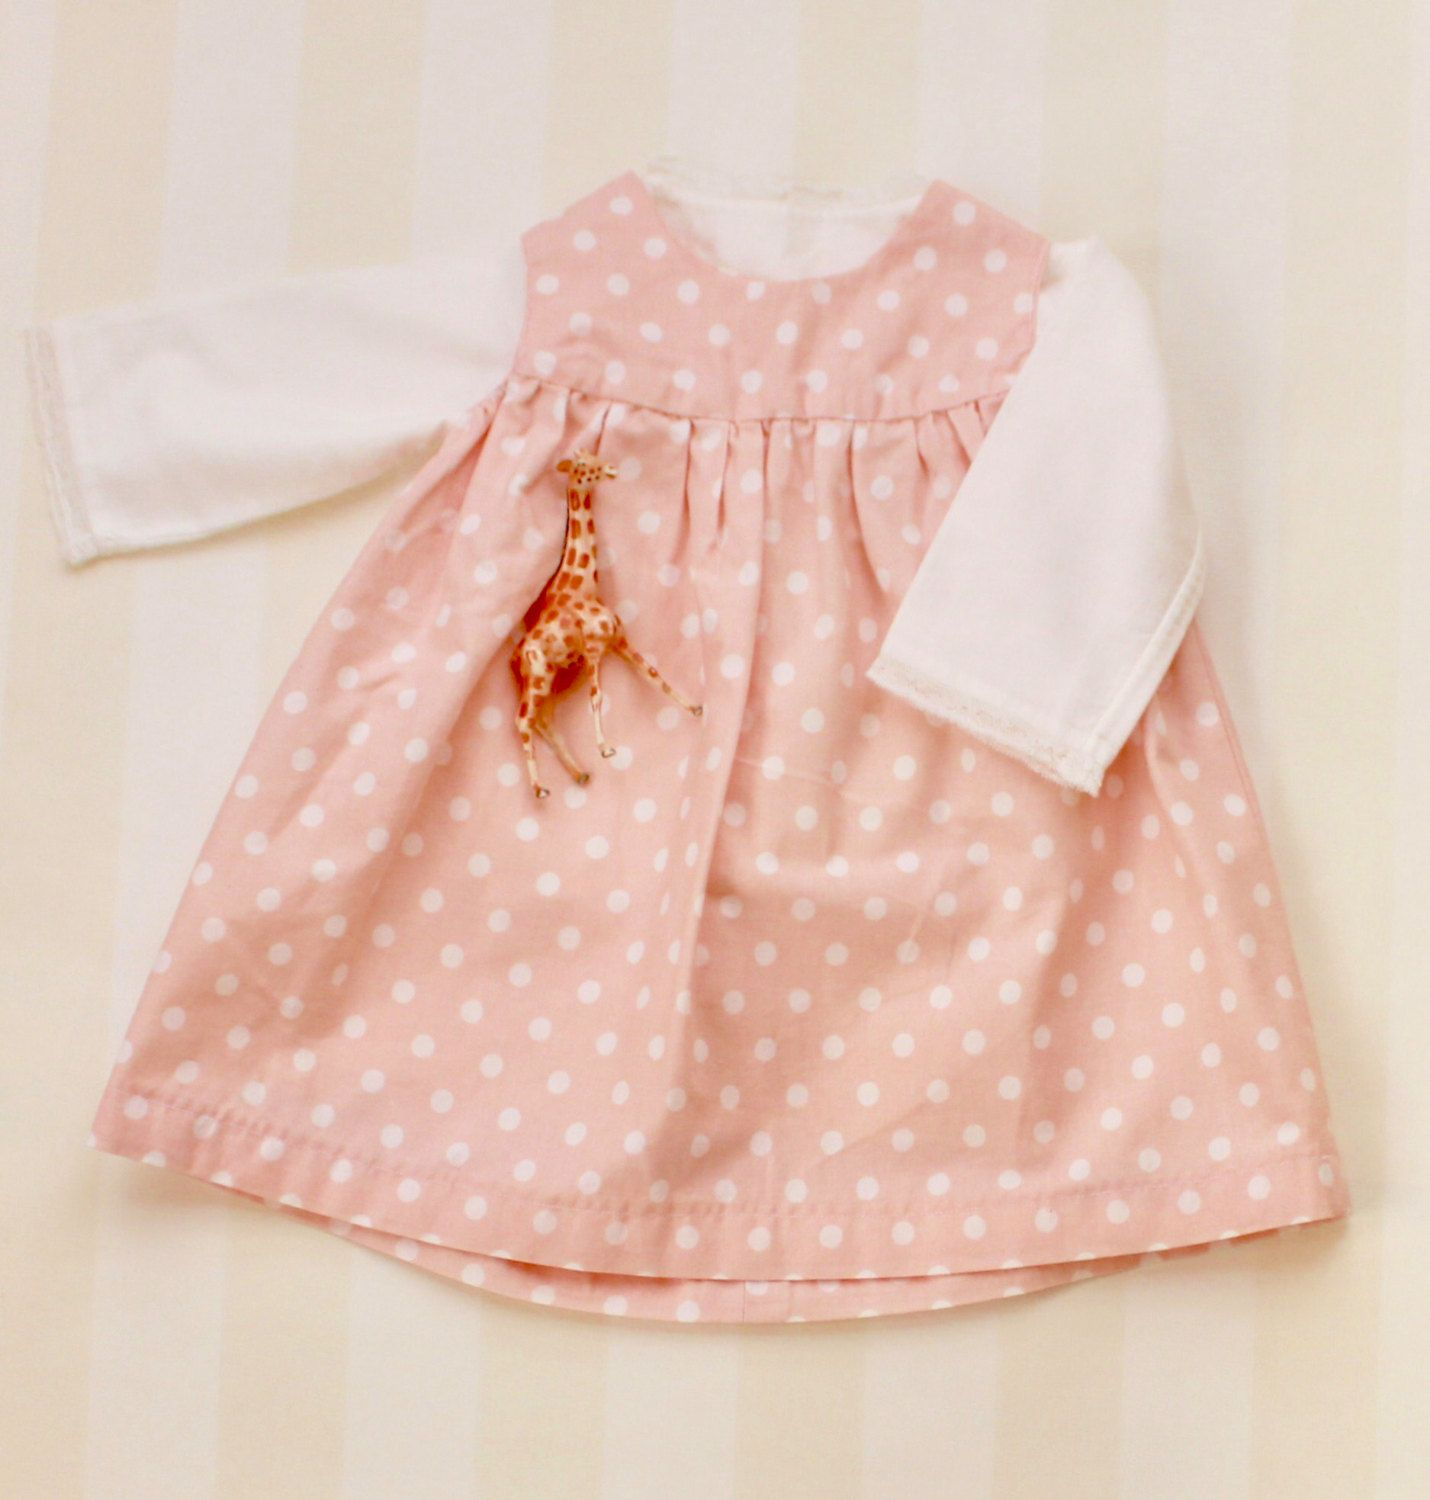 Pin on Baby and Toddler Summer Clothes